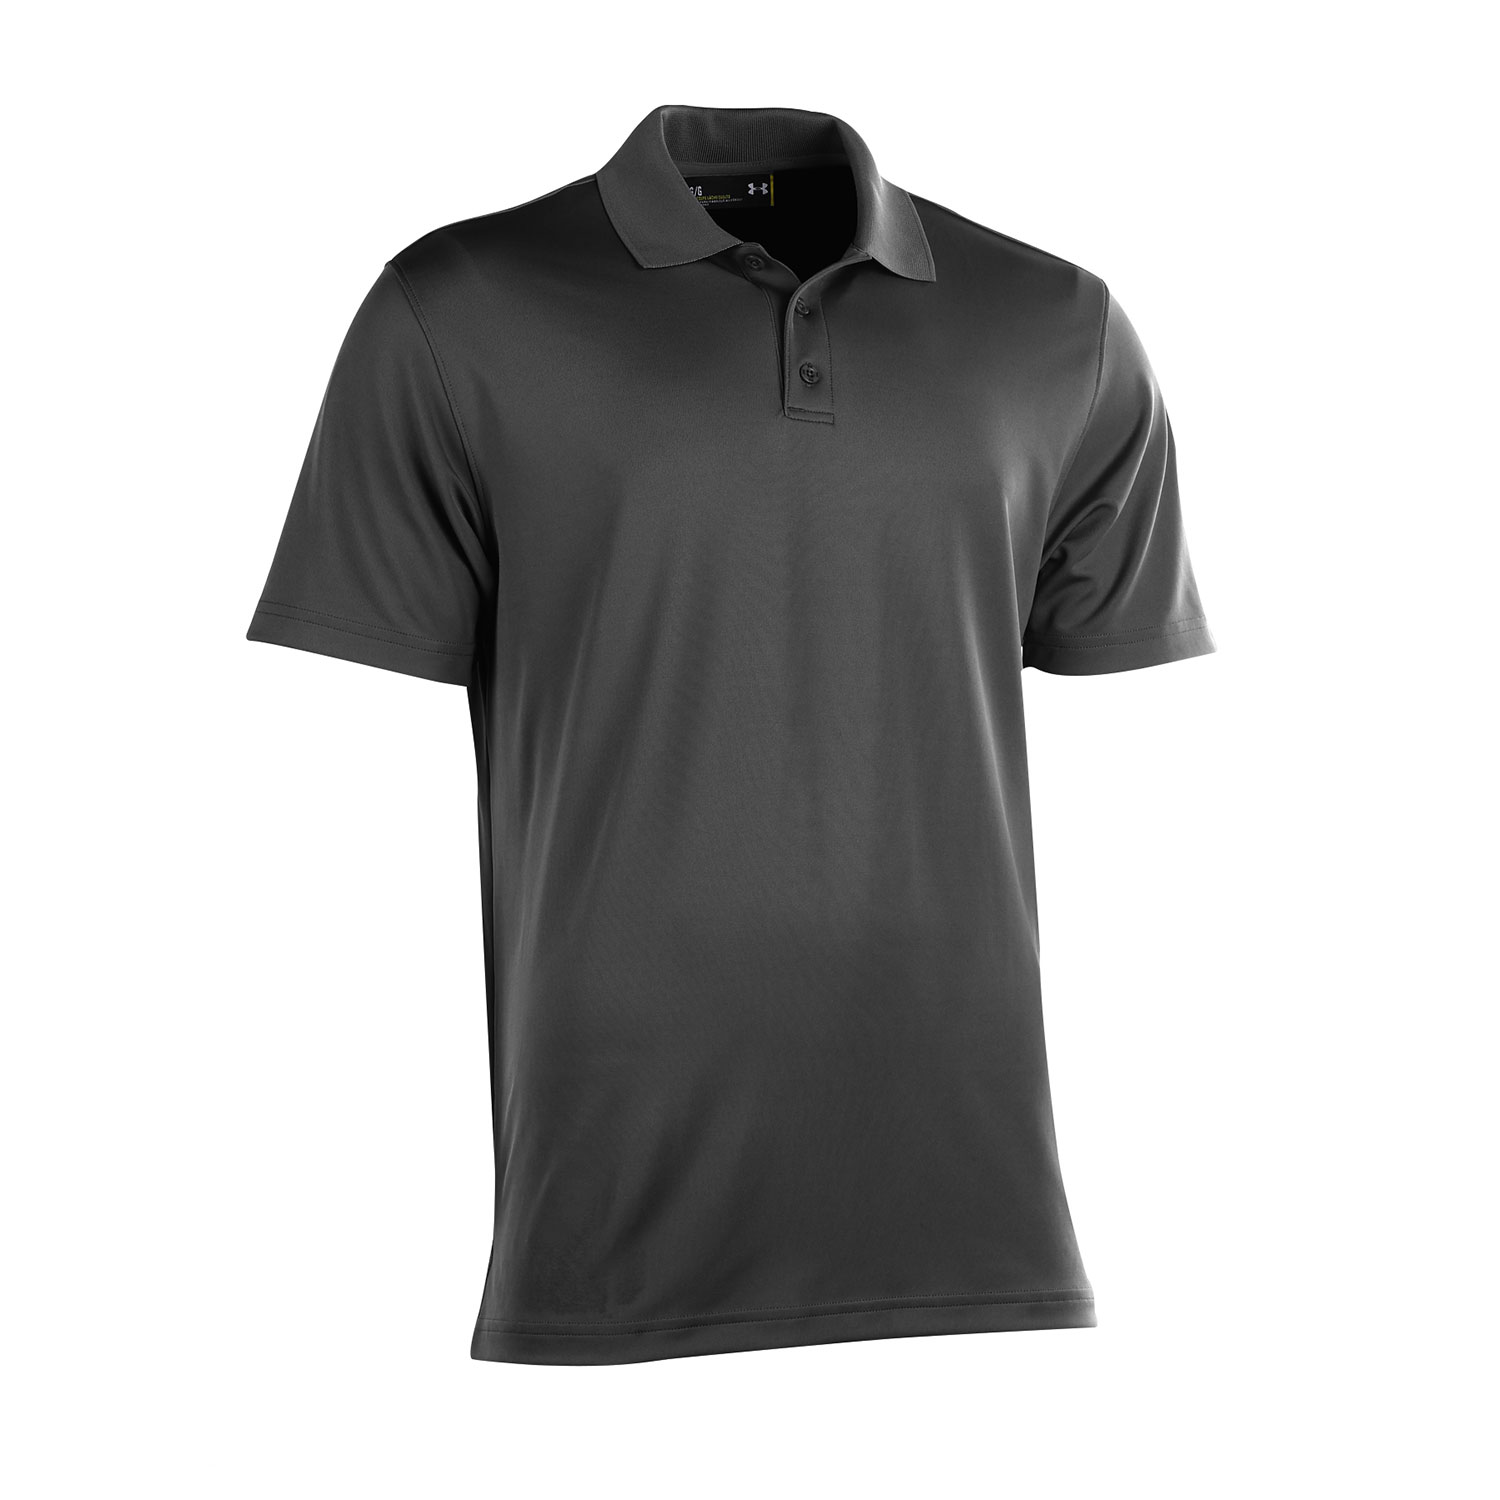 Under Armour Short Sleeve Tactical Performance Polo